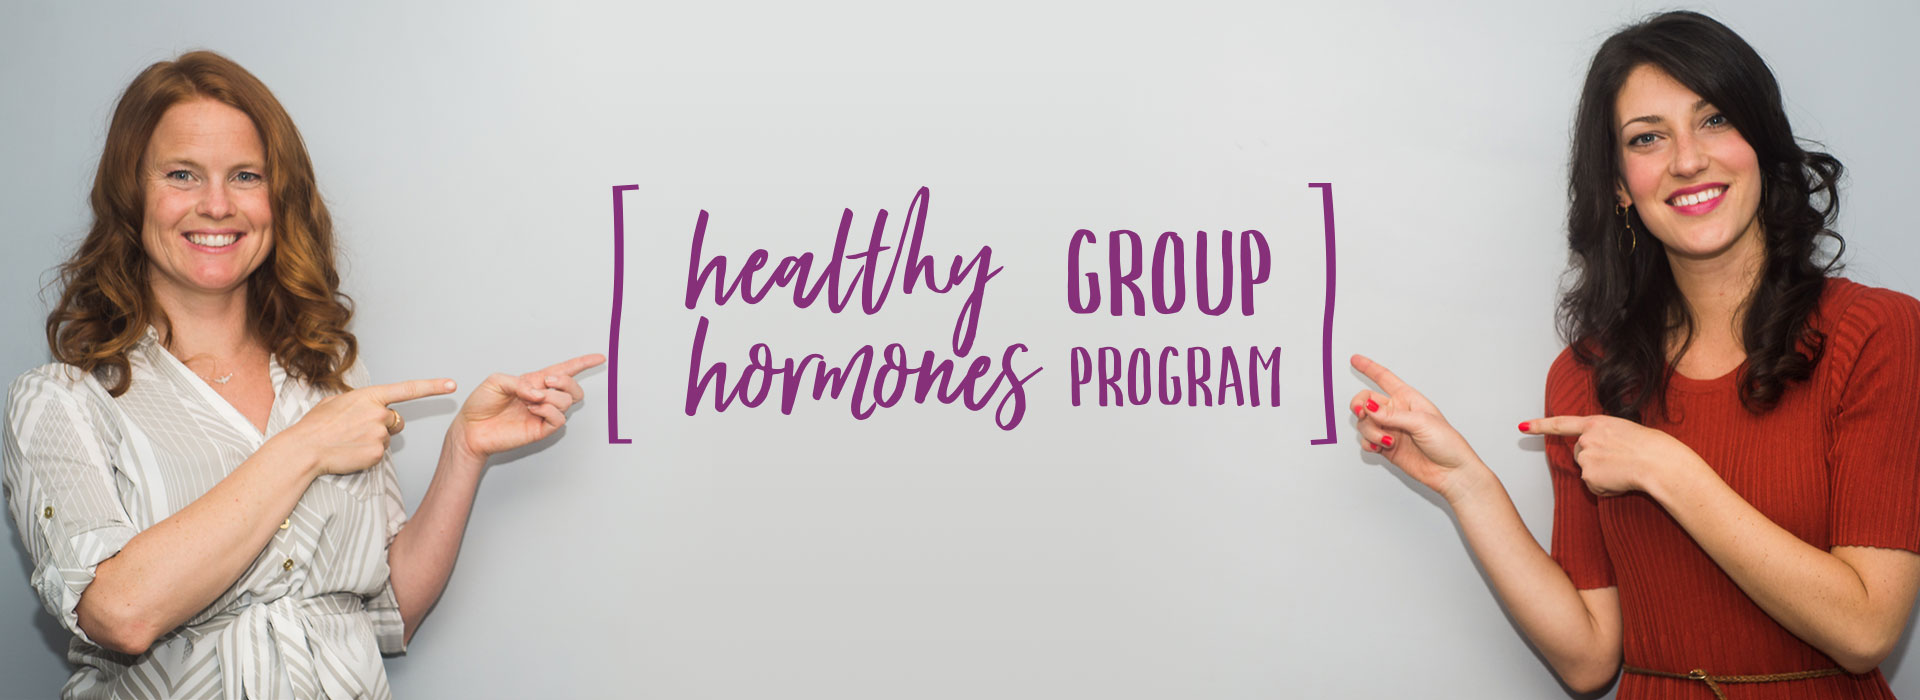 Healthy Hormones Group Program with Megan Rand-Blacksmith and Alex Golden